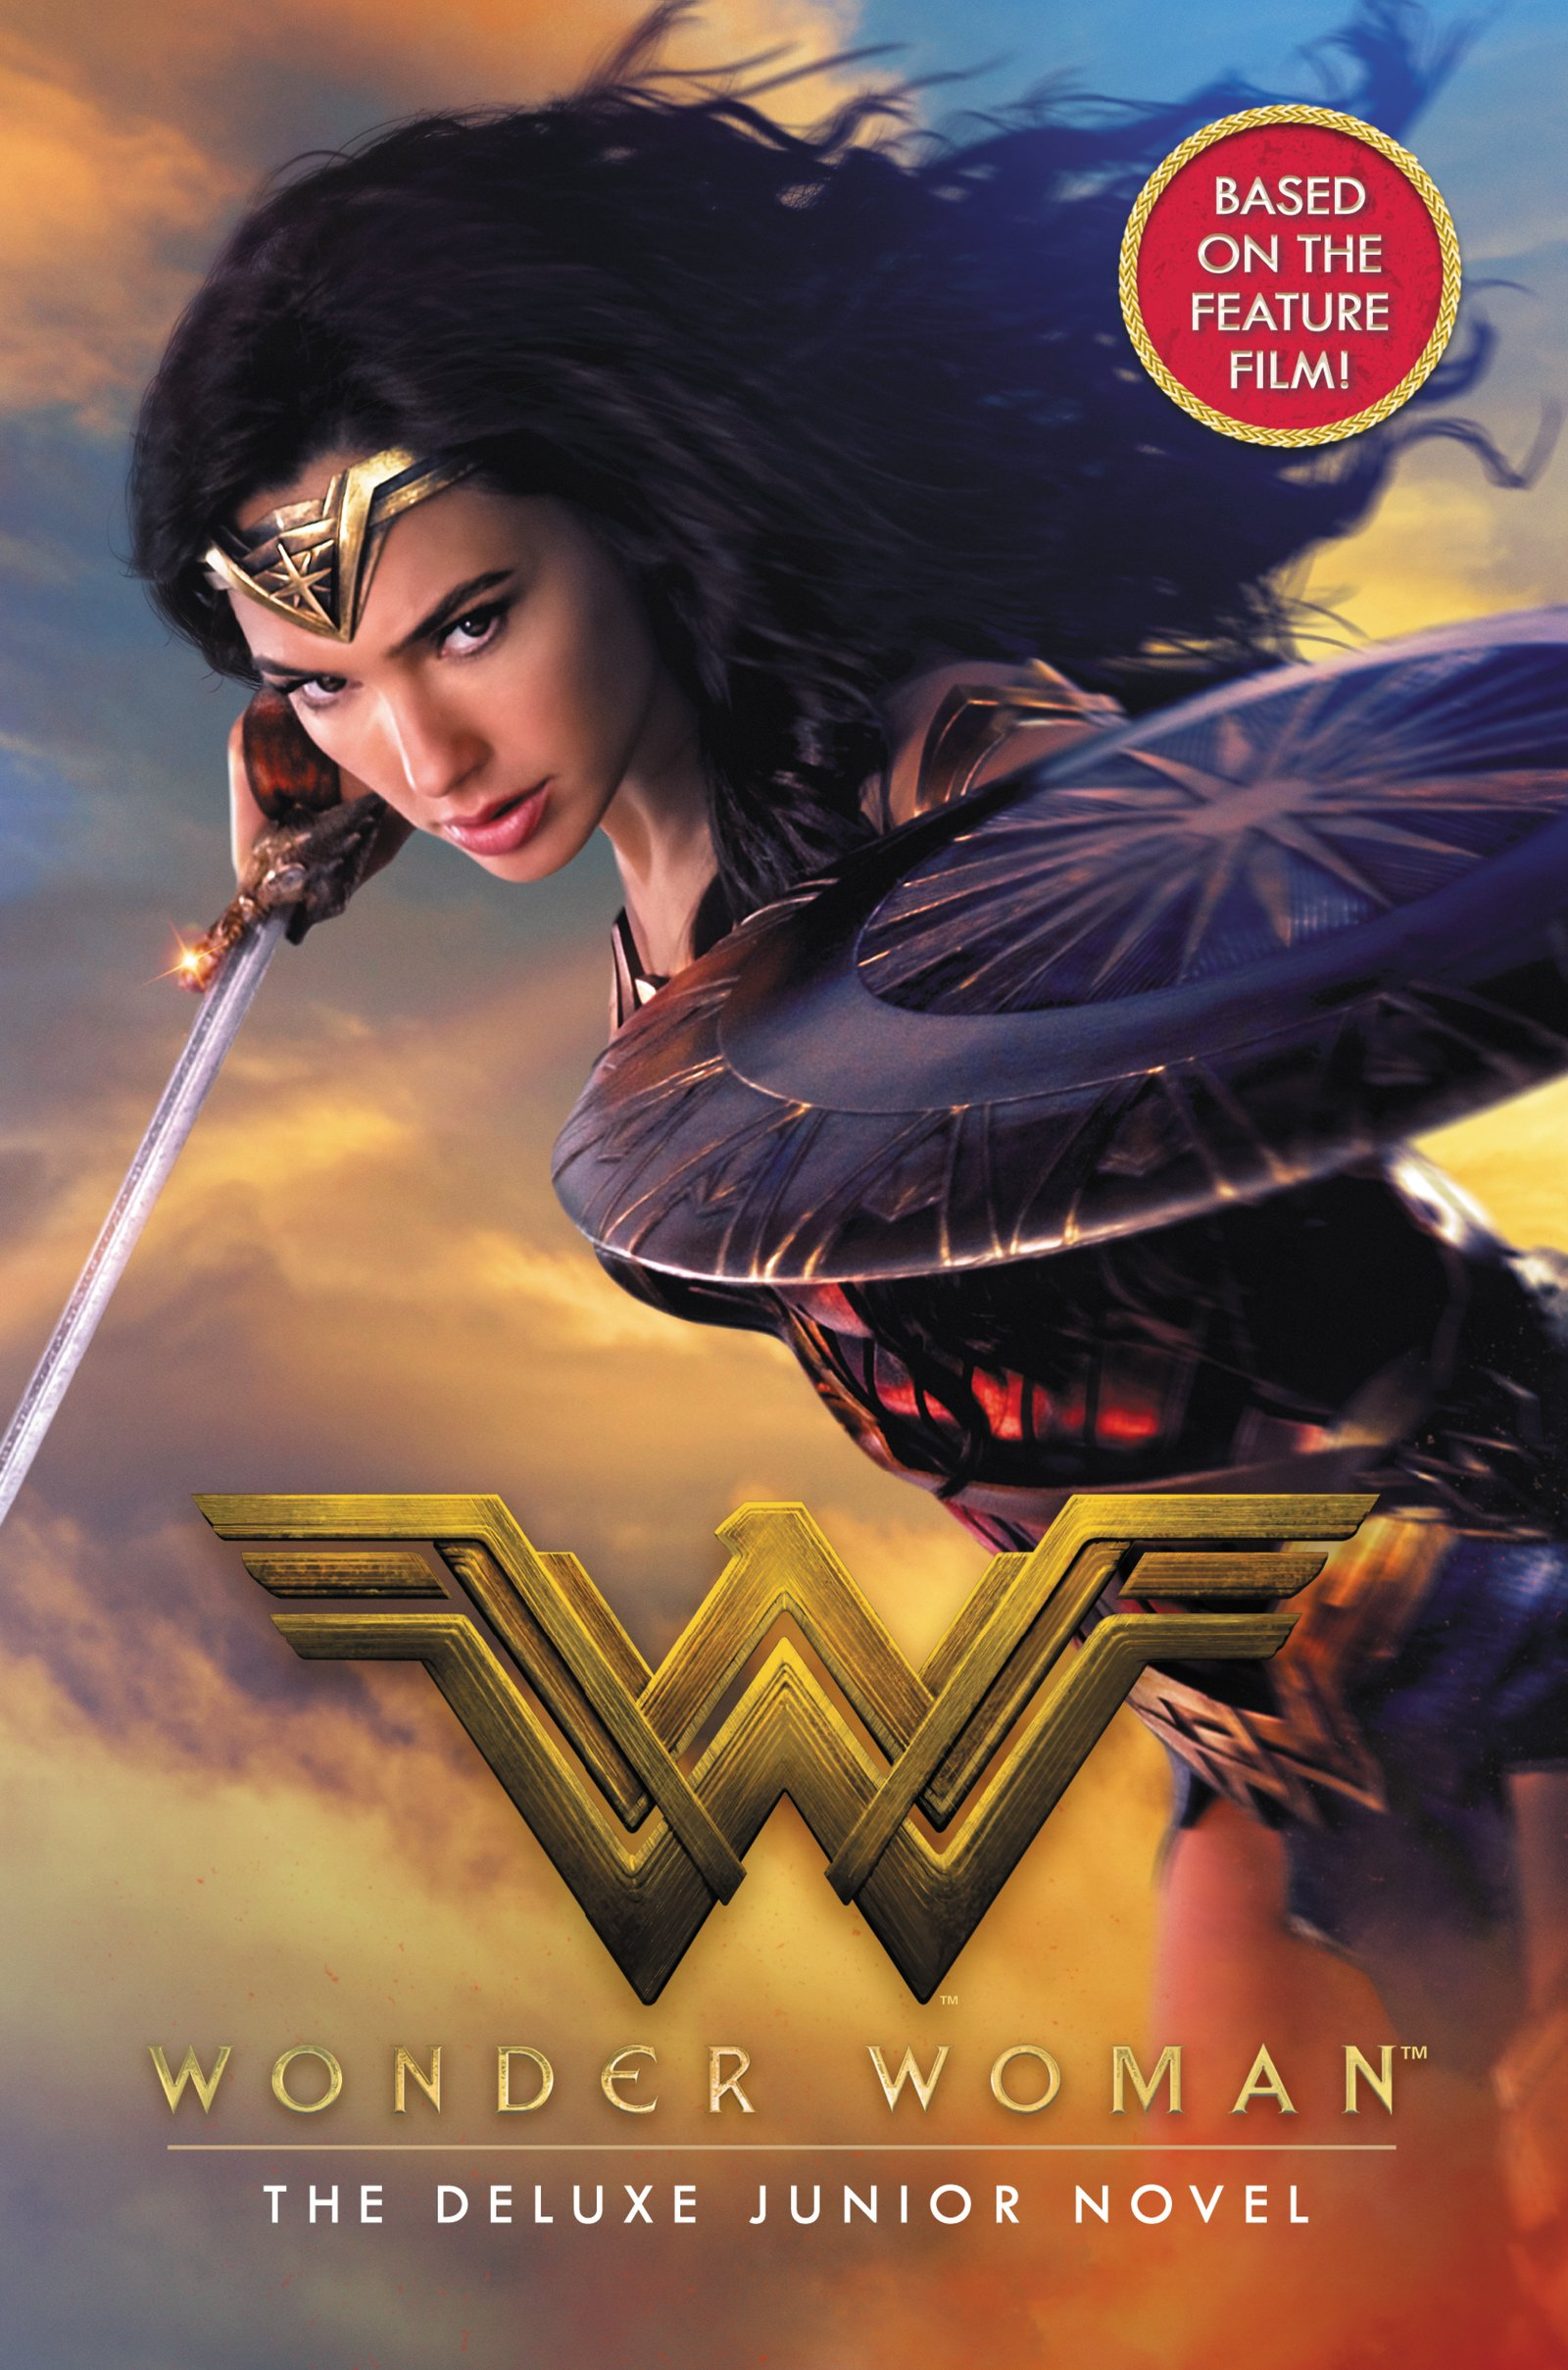 Amazon Has Put Up Its Listing For Wonder Woman The Deluxe Junior Novel And Cover Gives Us A Fantastic New Look At Gal Gadot In Costume